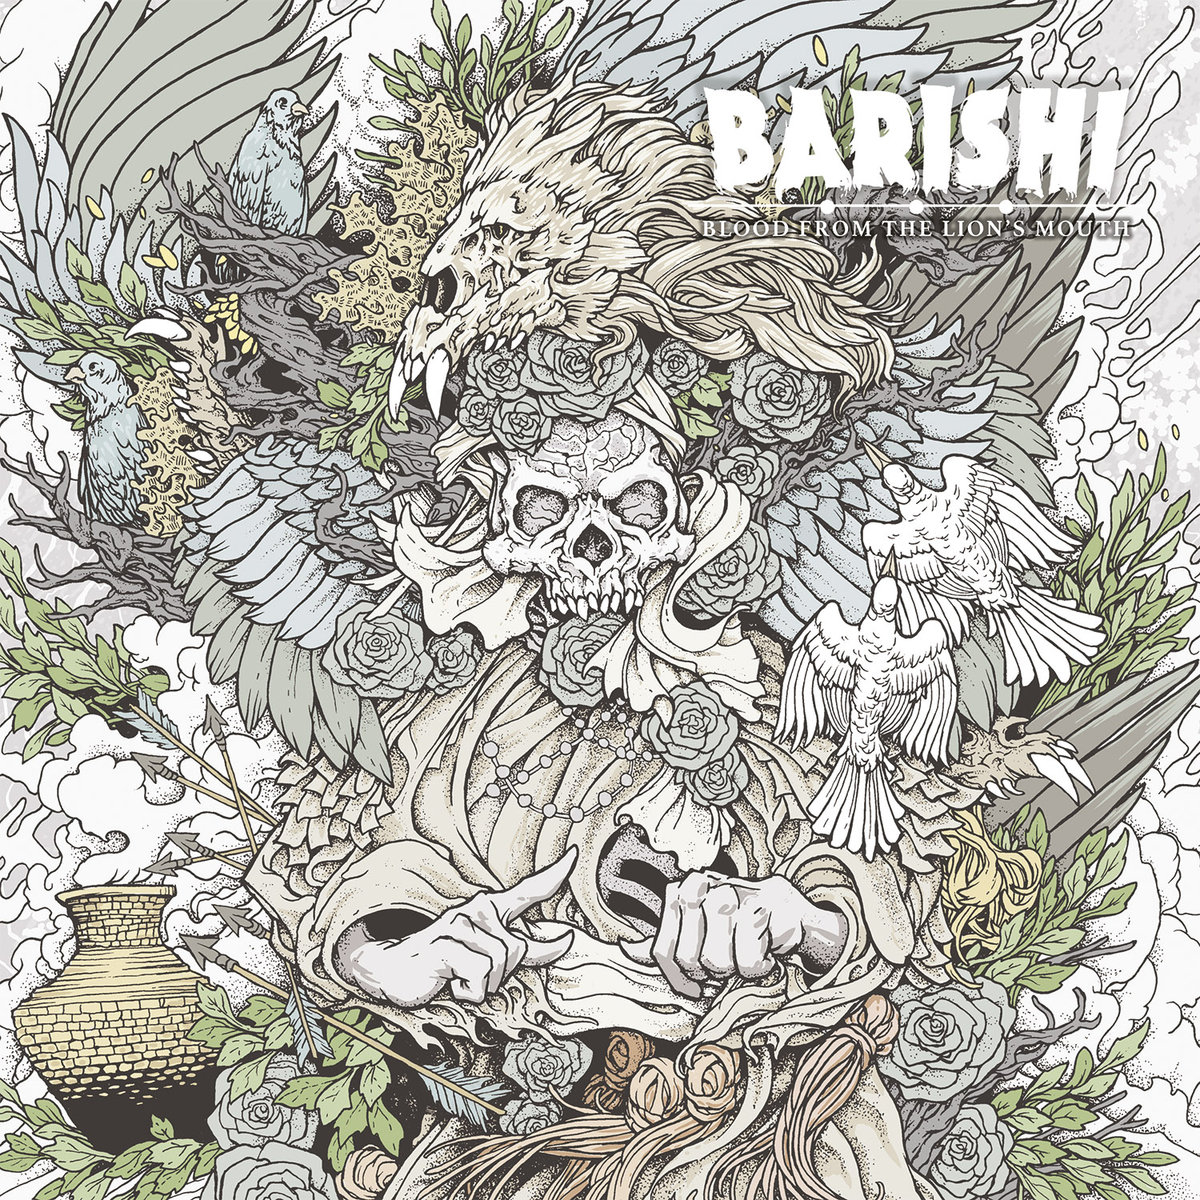 Barishi - Blood From the Lions Mouth 01